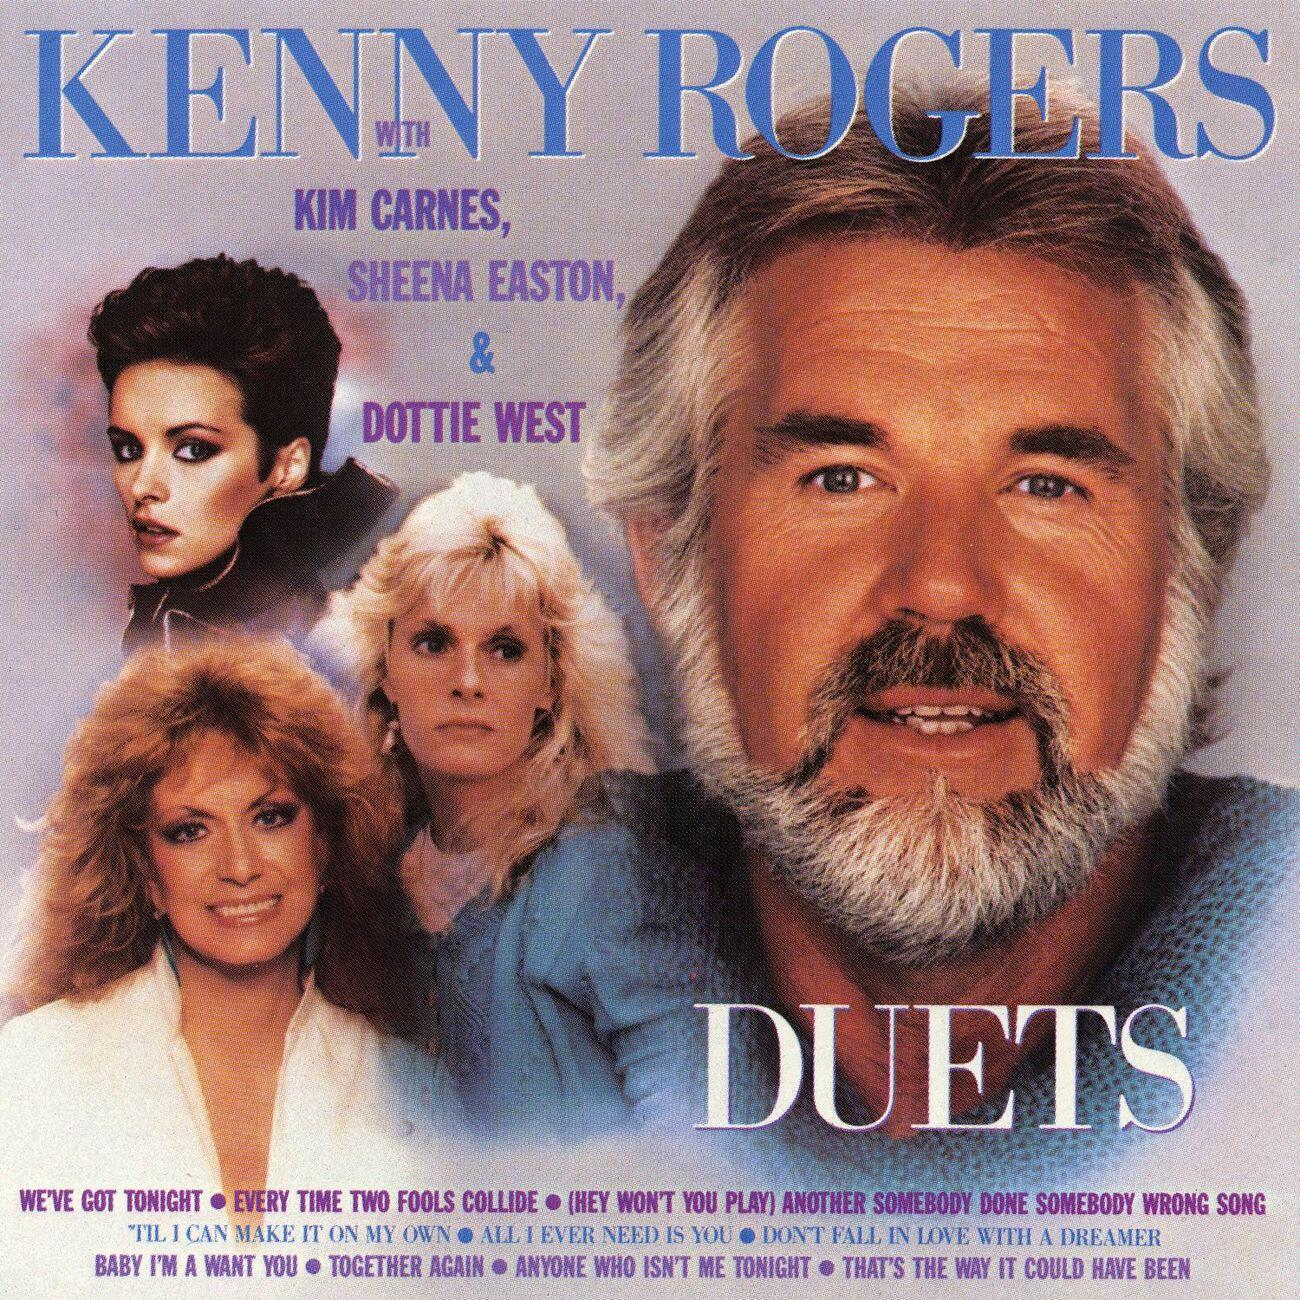 Kenny Rogers And Dottie West Radio: Listen to Free Music ...